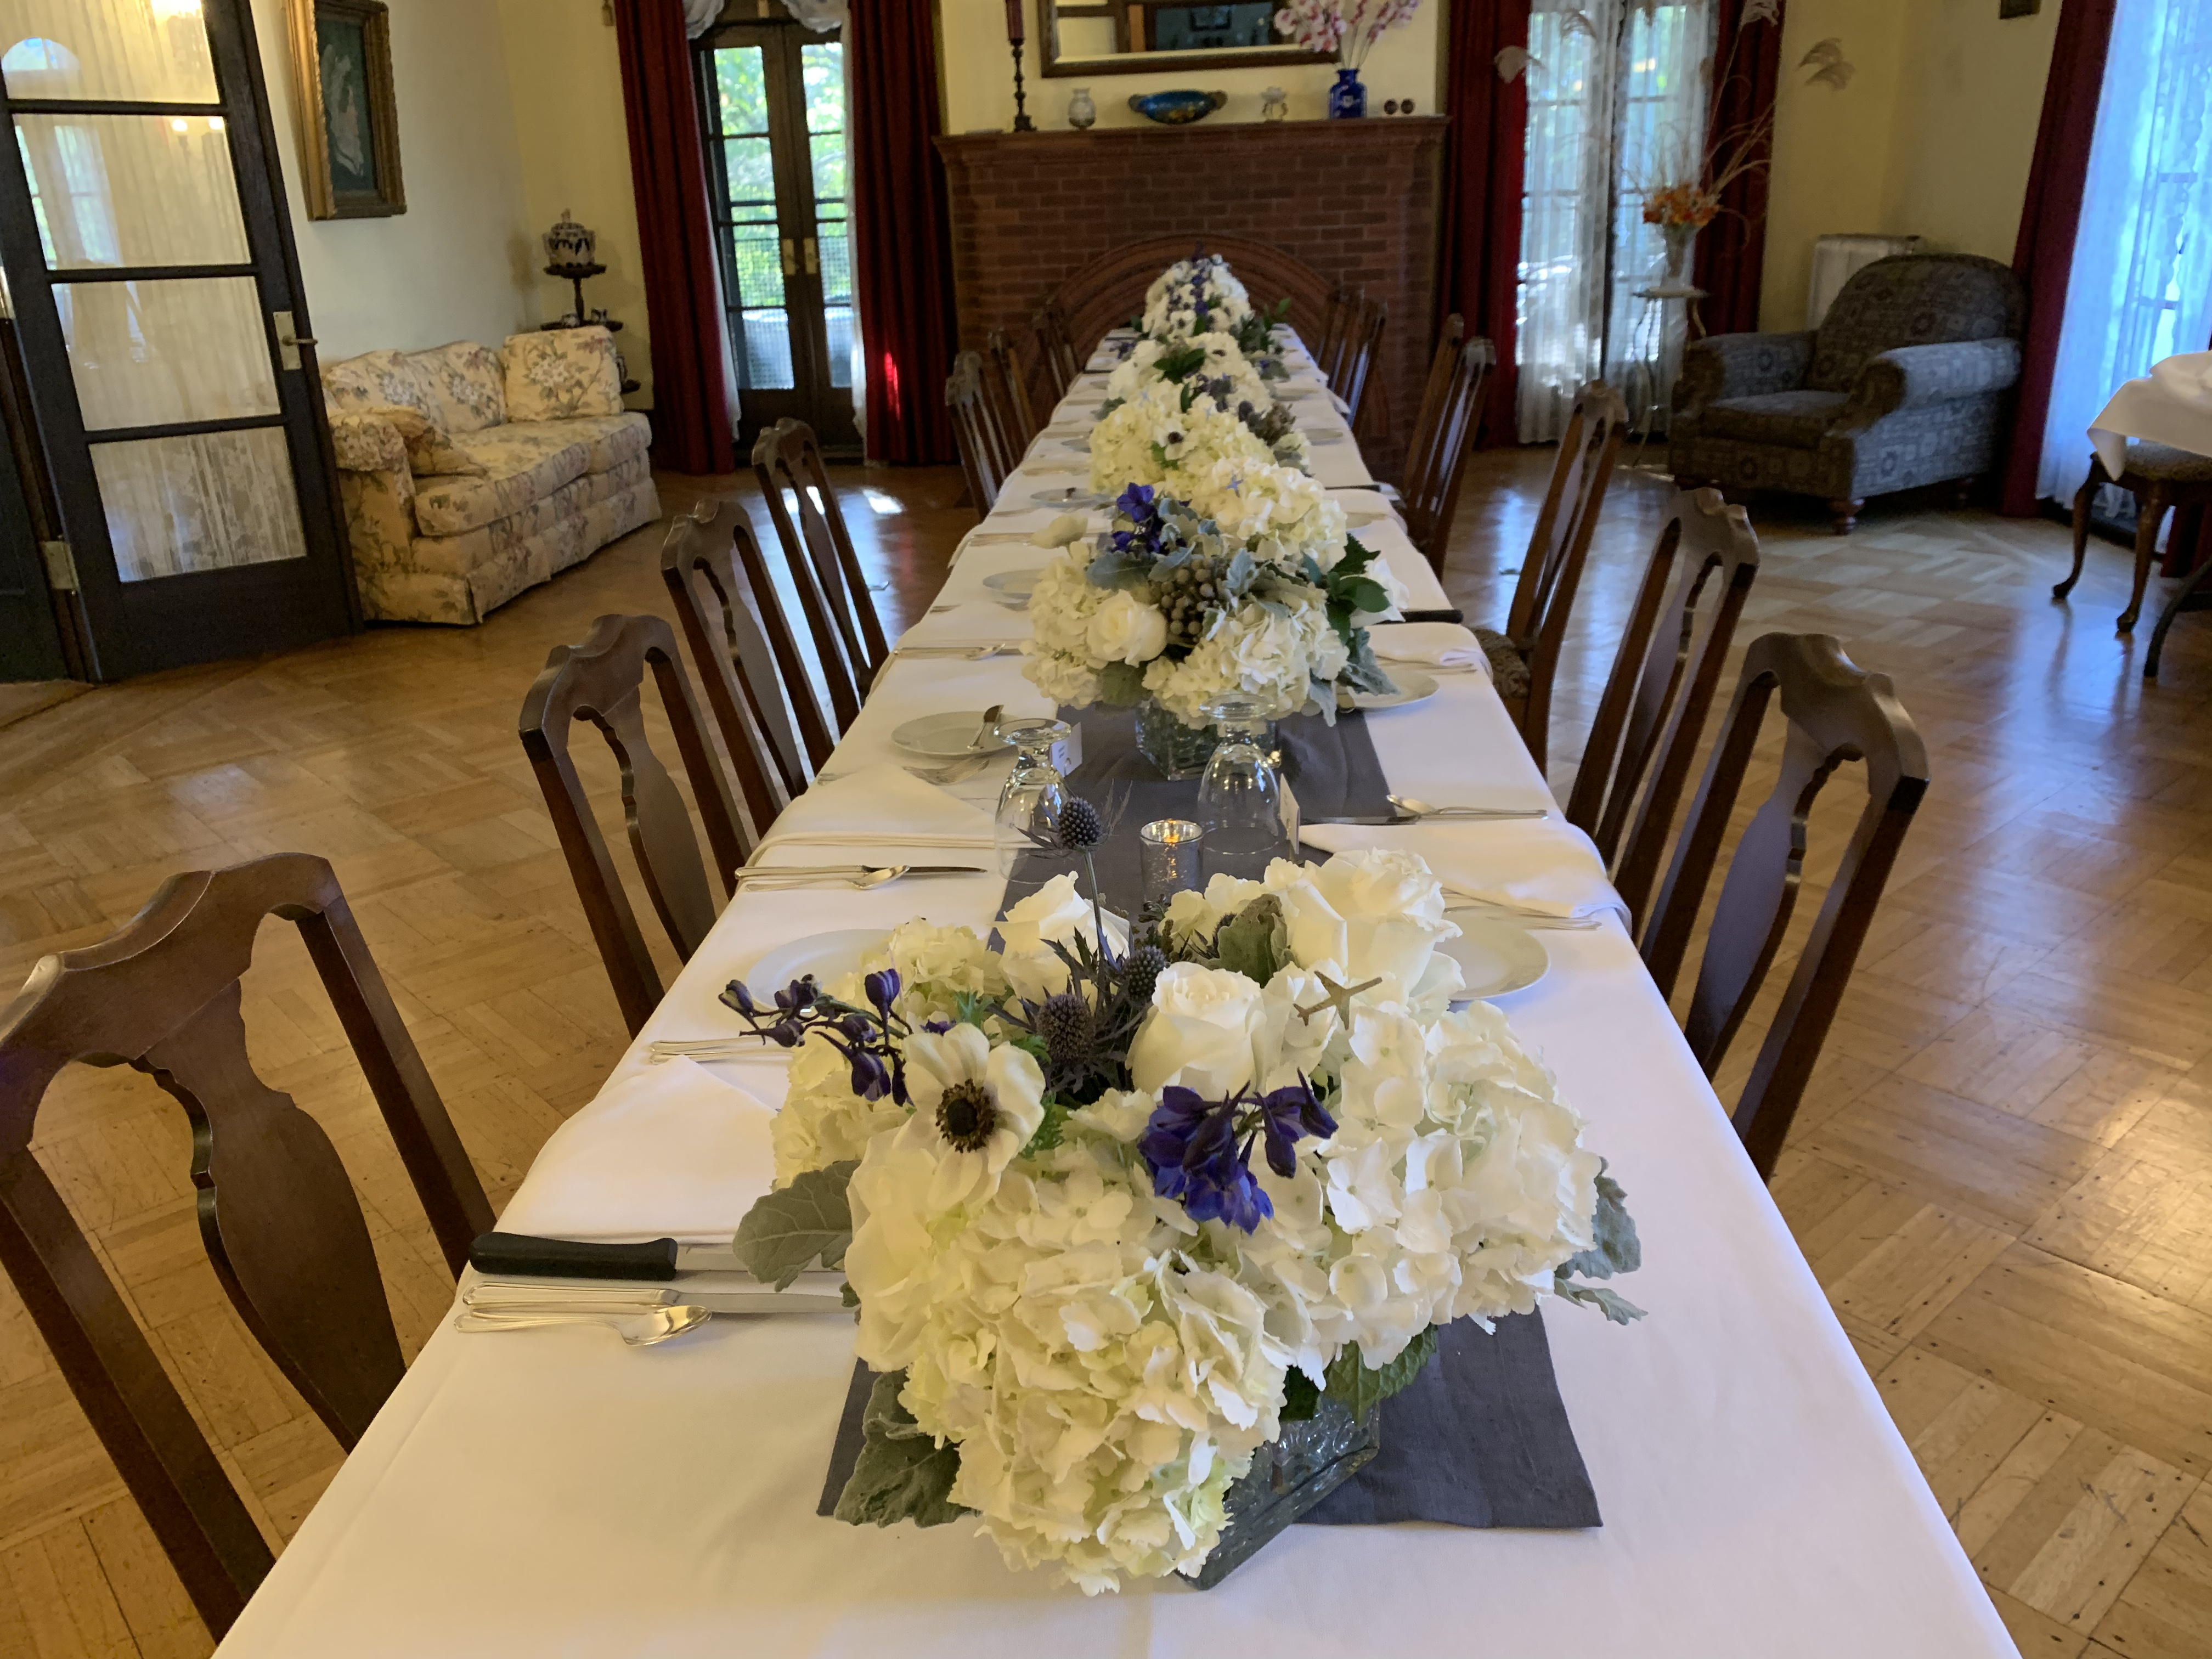 Table set-up with flowers, plates, and silverware for a wedding rehearsal